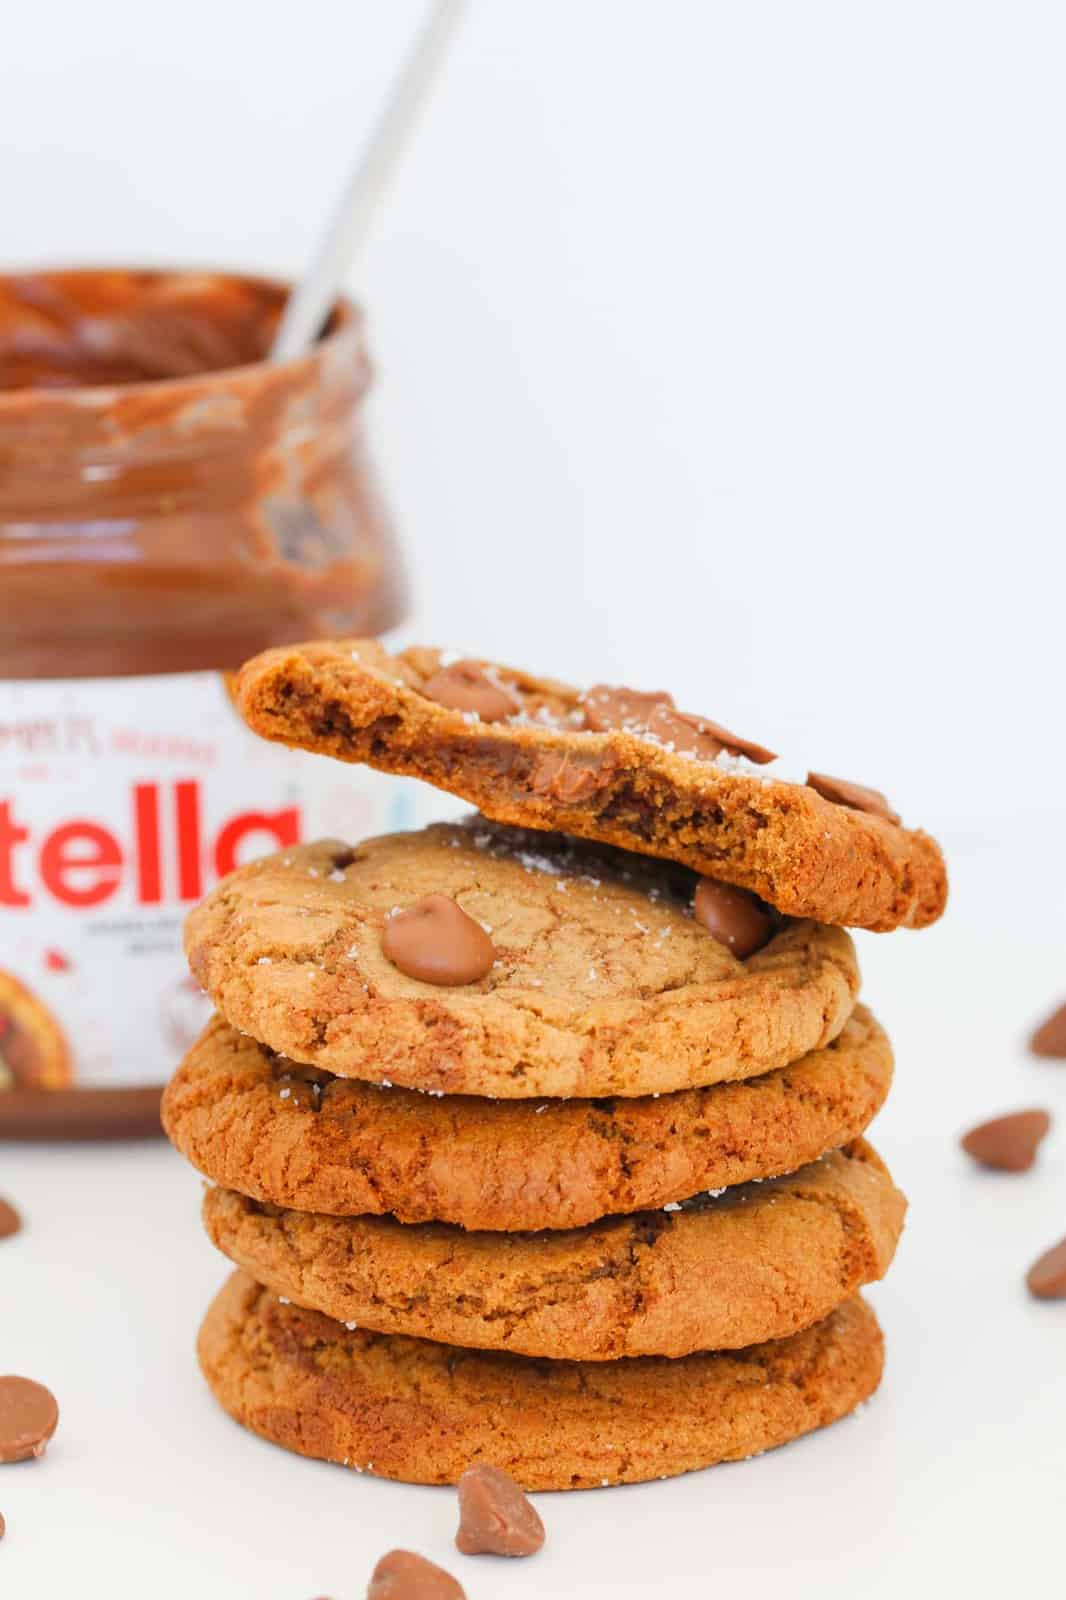 A stack of cookies with chocolate chips with one half eaten on top, and a jar of Nutella in the background.